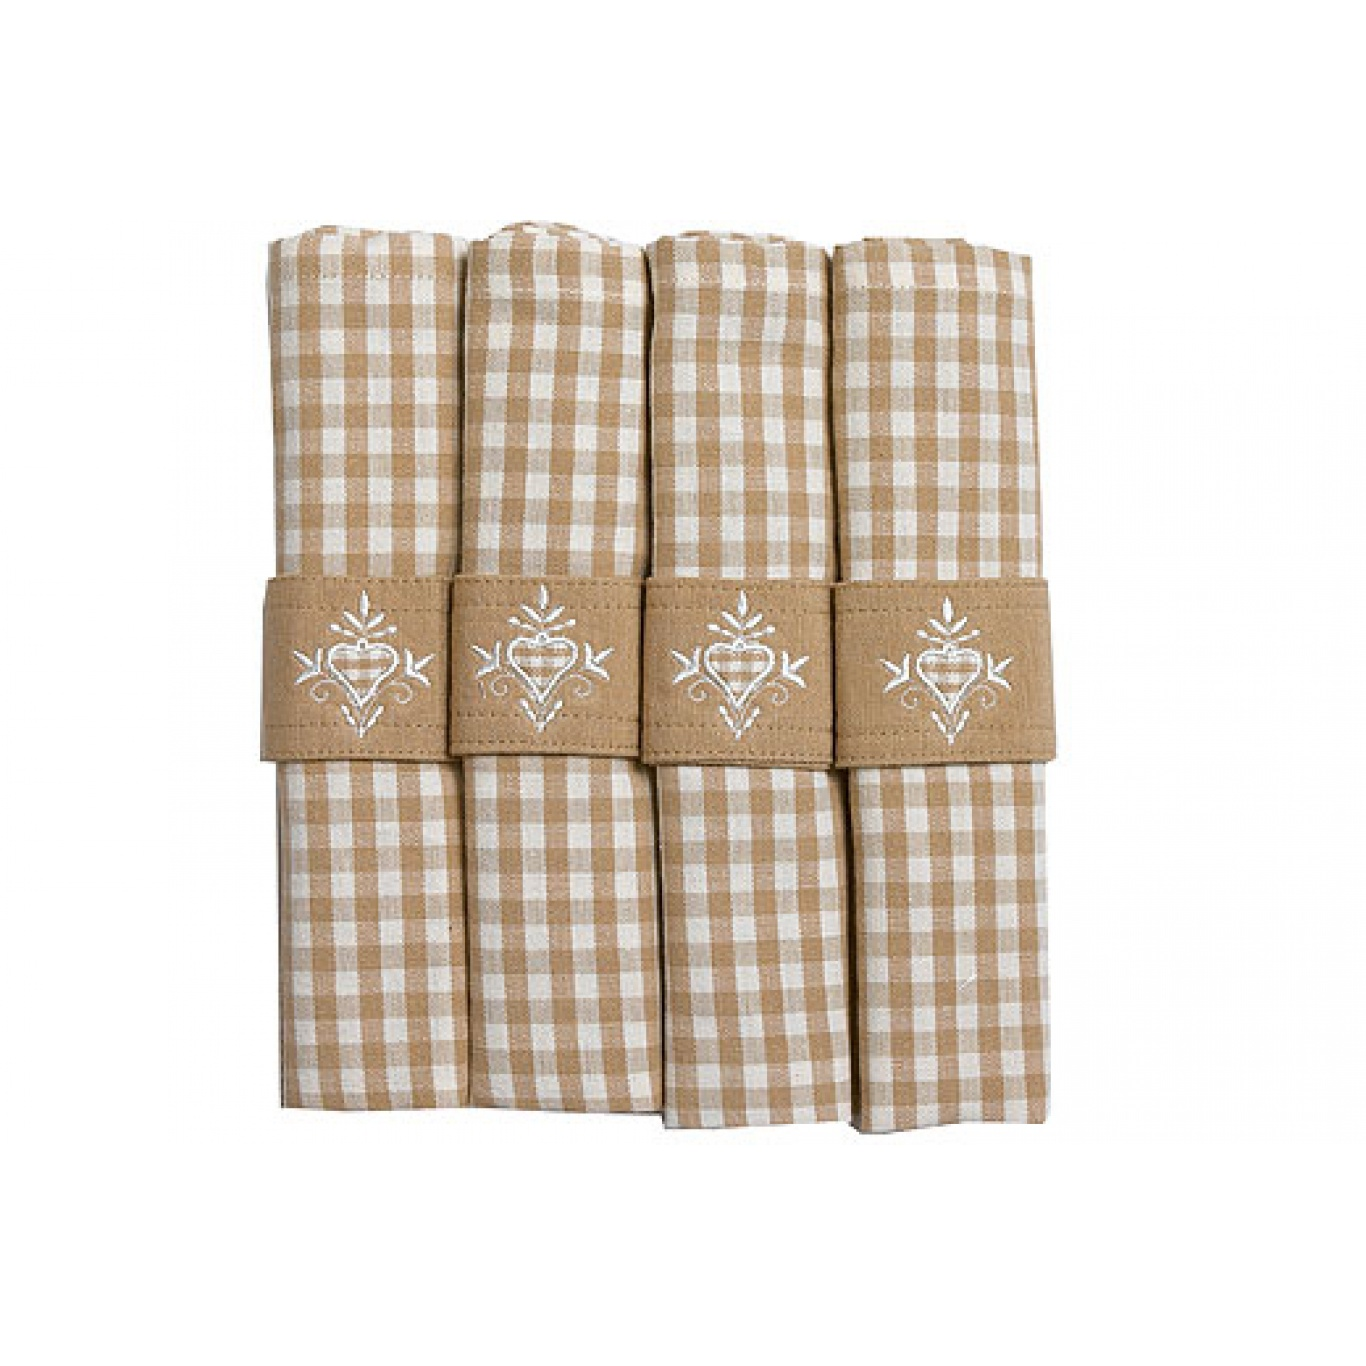 Image of Auberge Biscuit Check Napkins set of 4